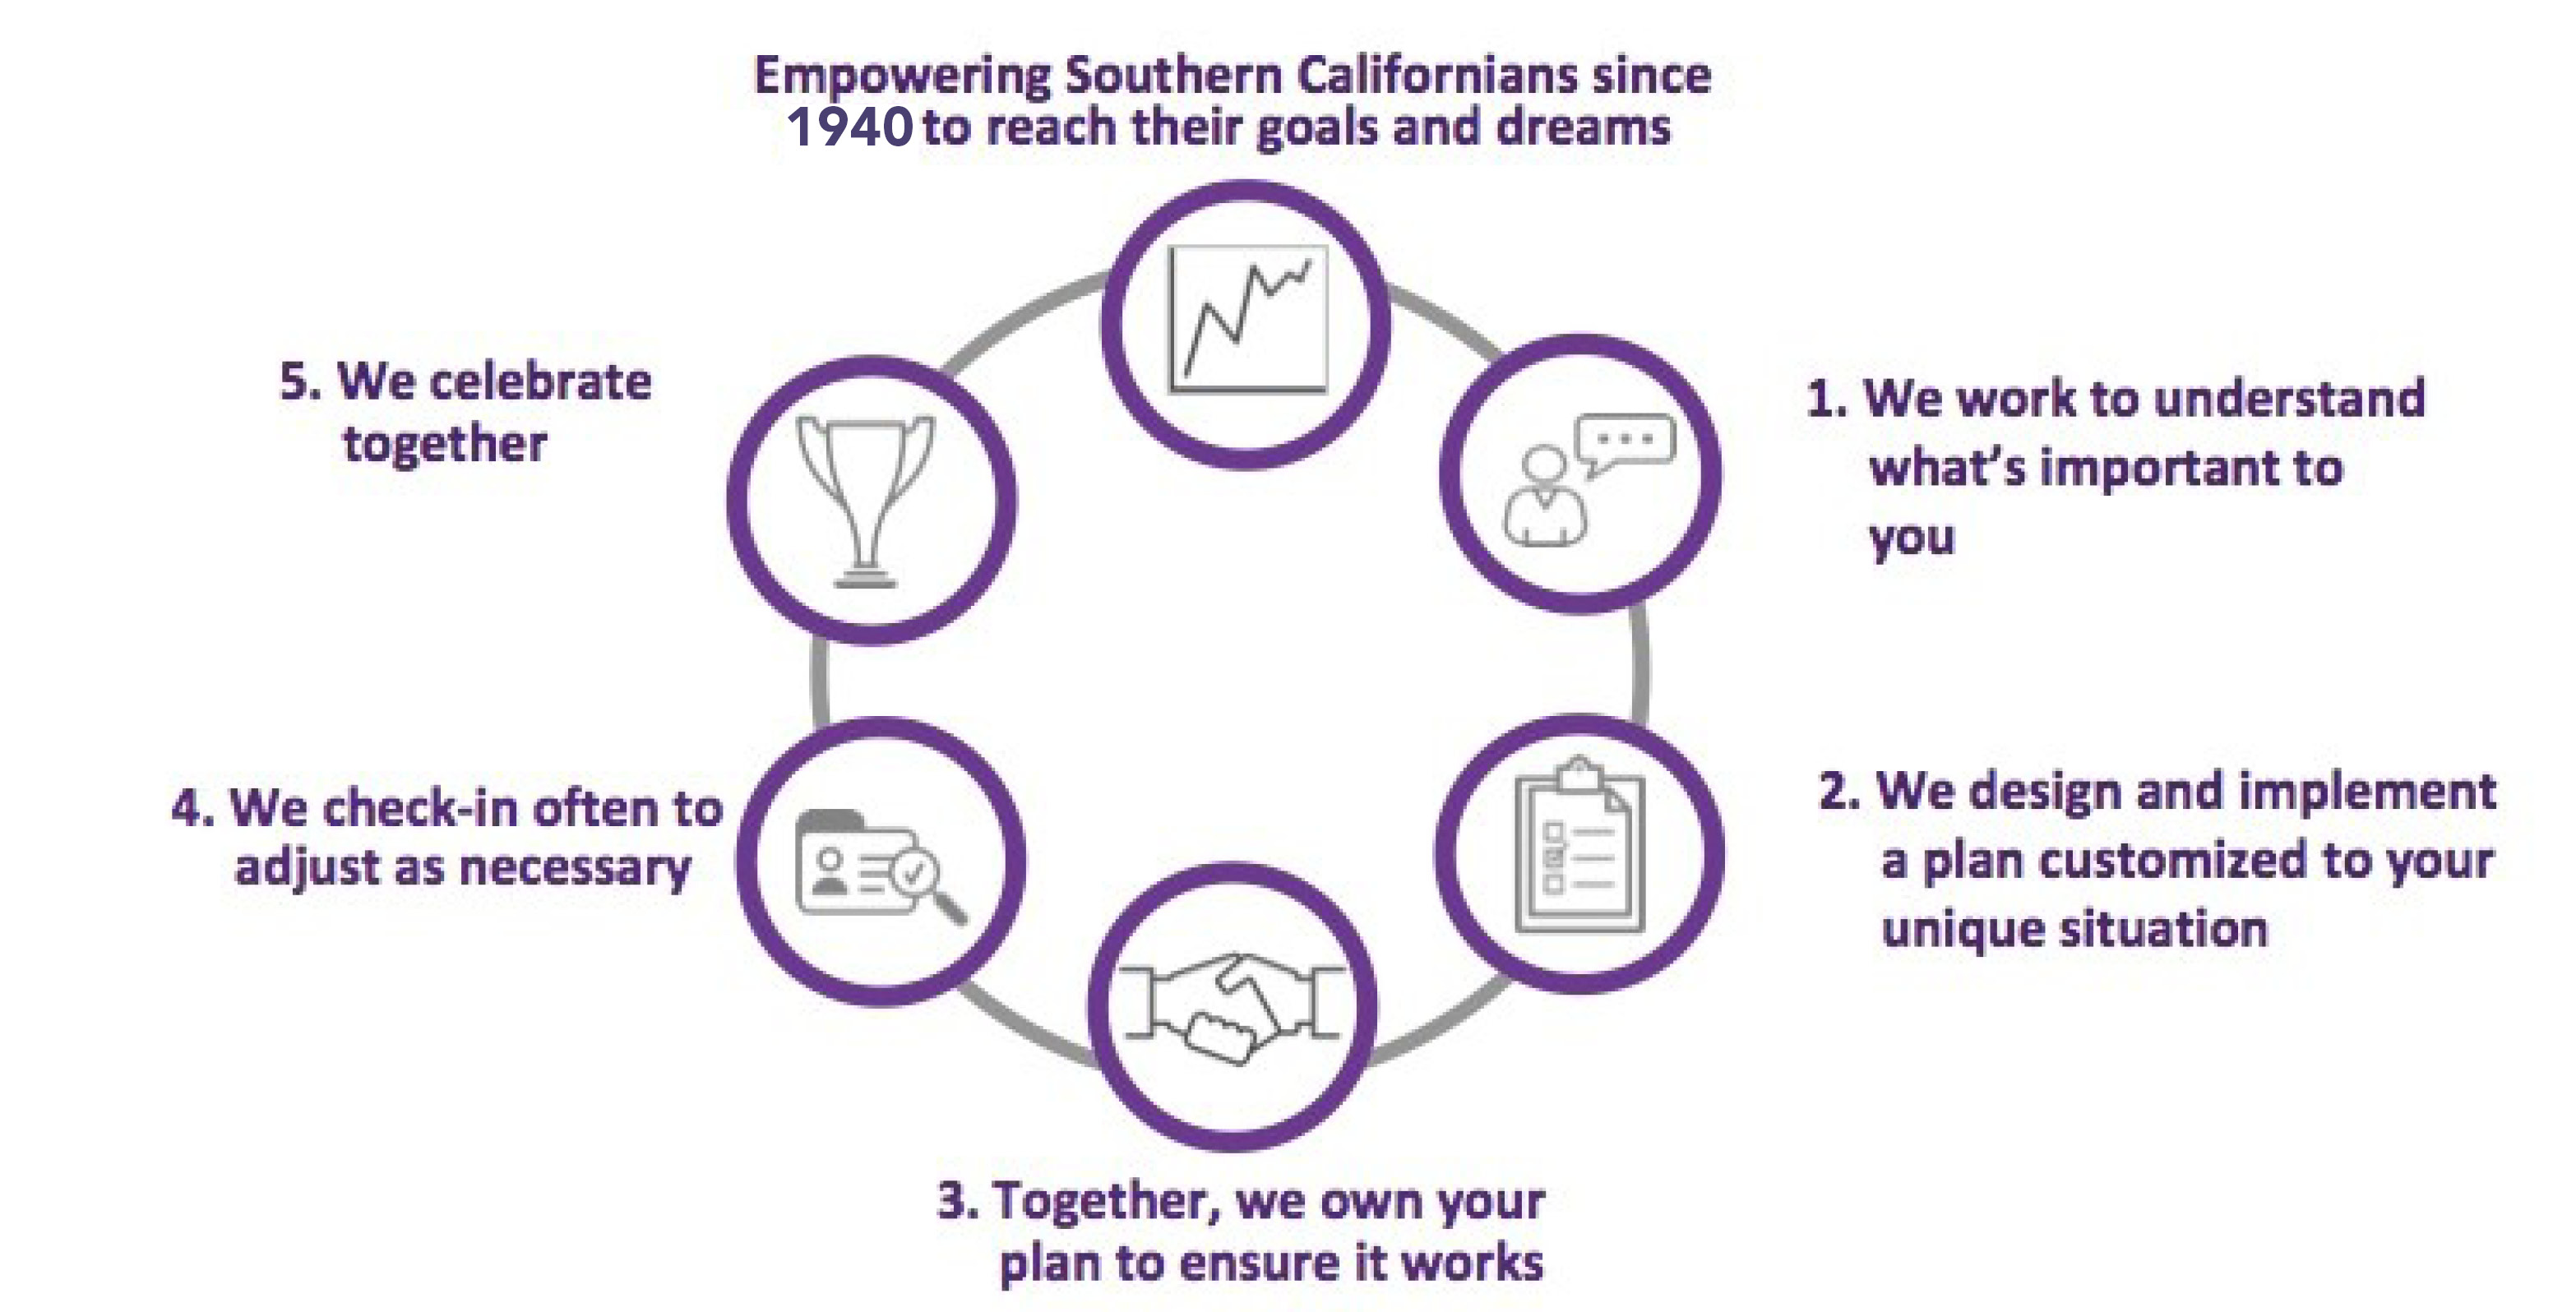 """Infographic: """"Empowering Southern Californians since 1940 to reach their goals and dreams: 1 we work to undestand what's important to you, 2 We design and implement a plan customized to your unique situation, 3 Together we own your plan to ensure it works, 4 We check in often to adjust as necessasry, 5 We celebrate together."""""""